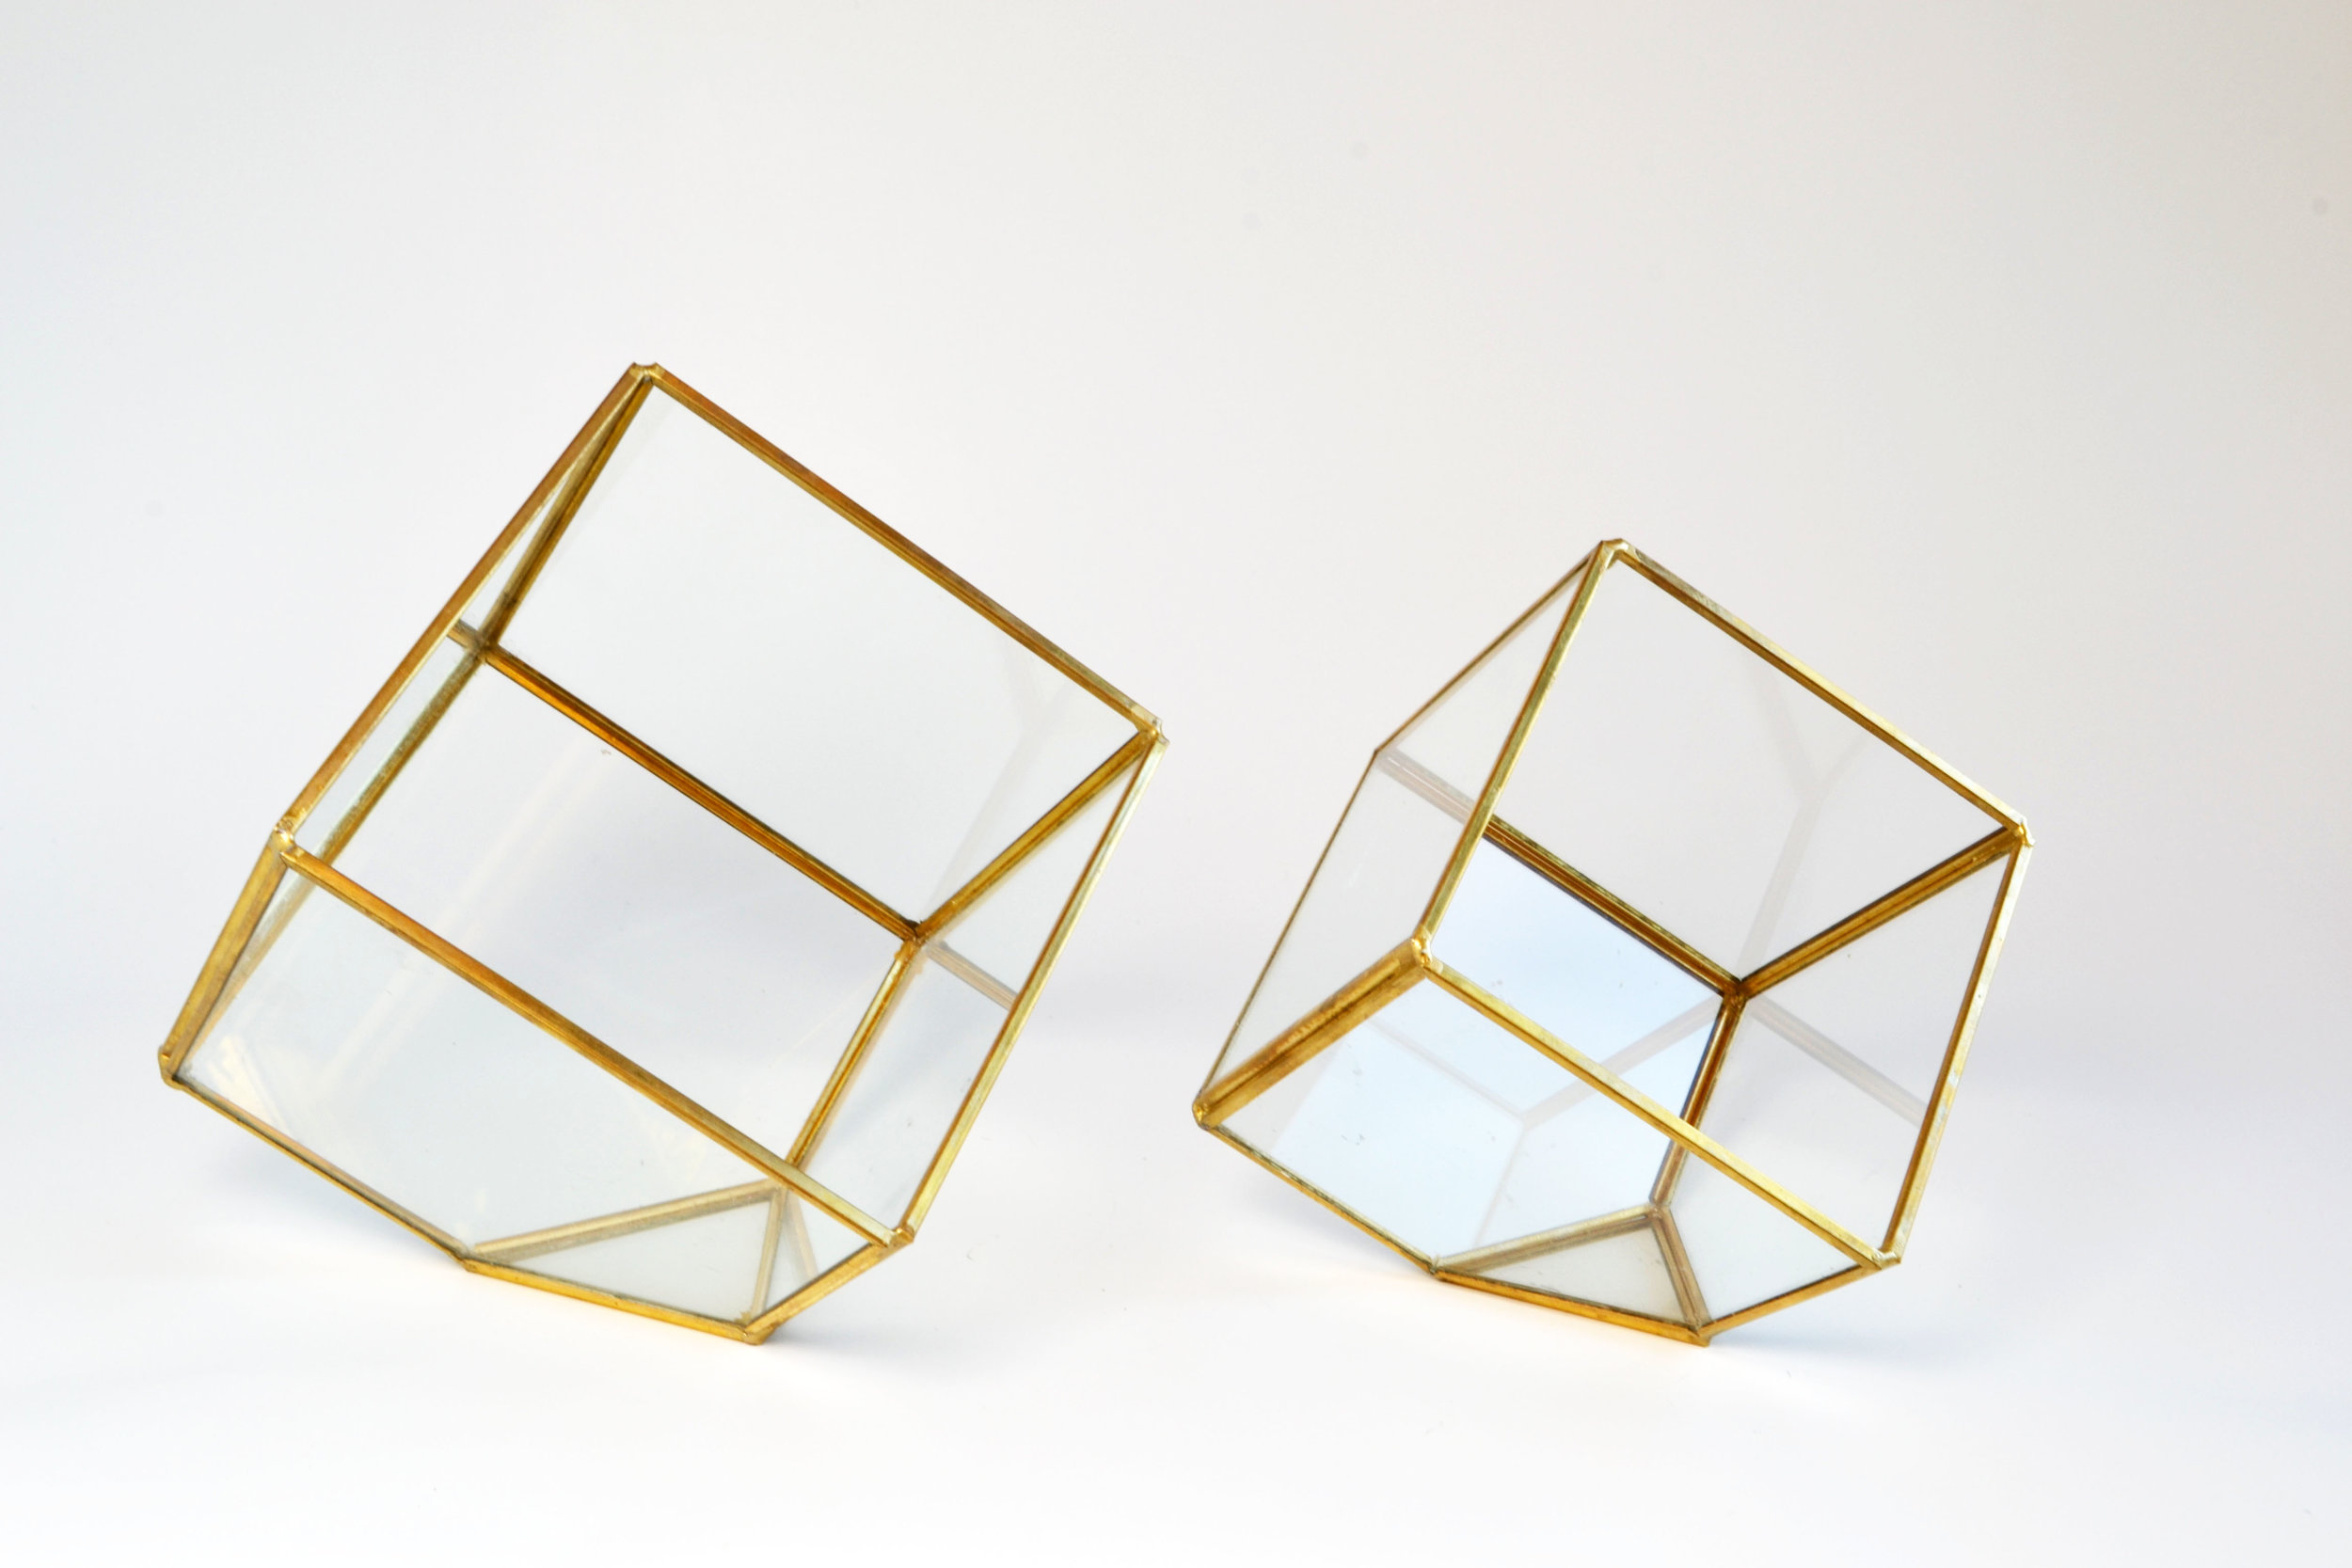 square - gold terrarium (Large) + (small)   Quantity: 56 - 36  Price: $6.50 - $8.50